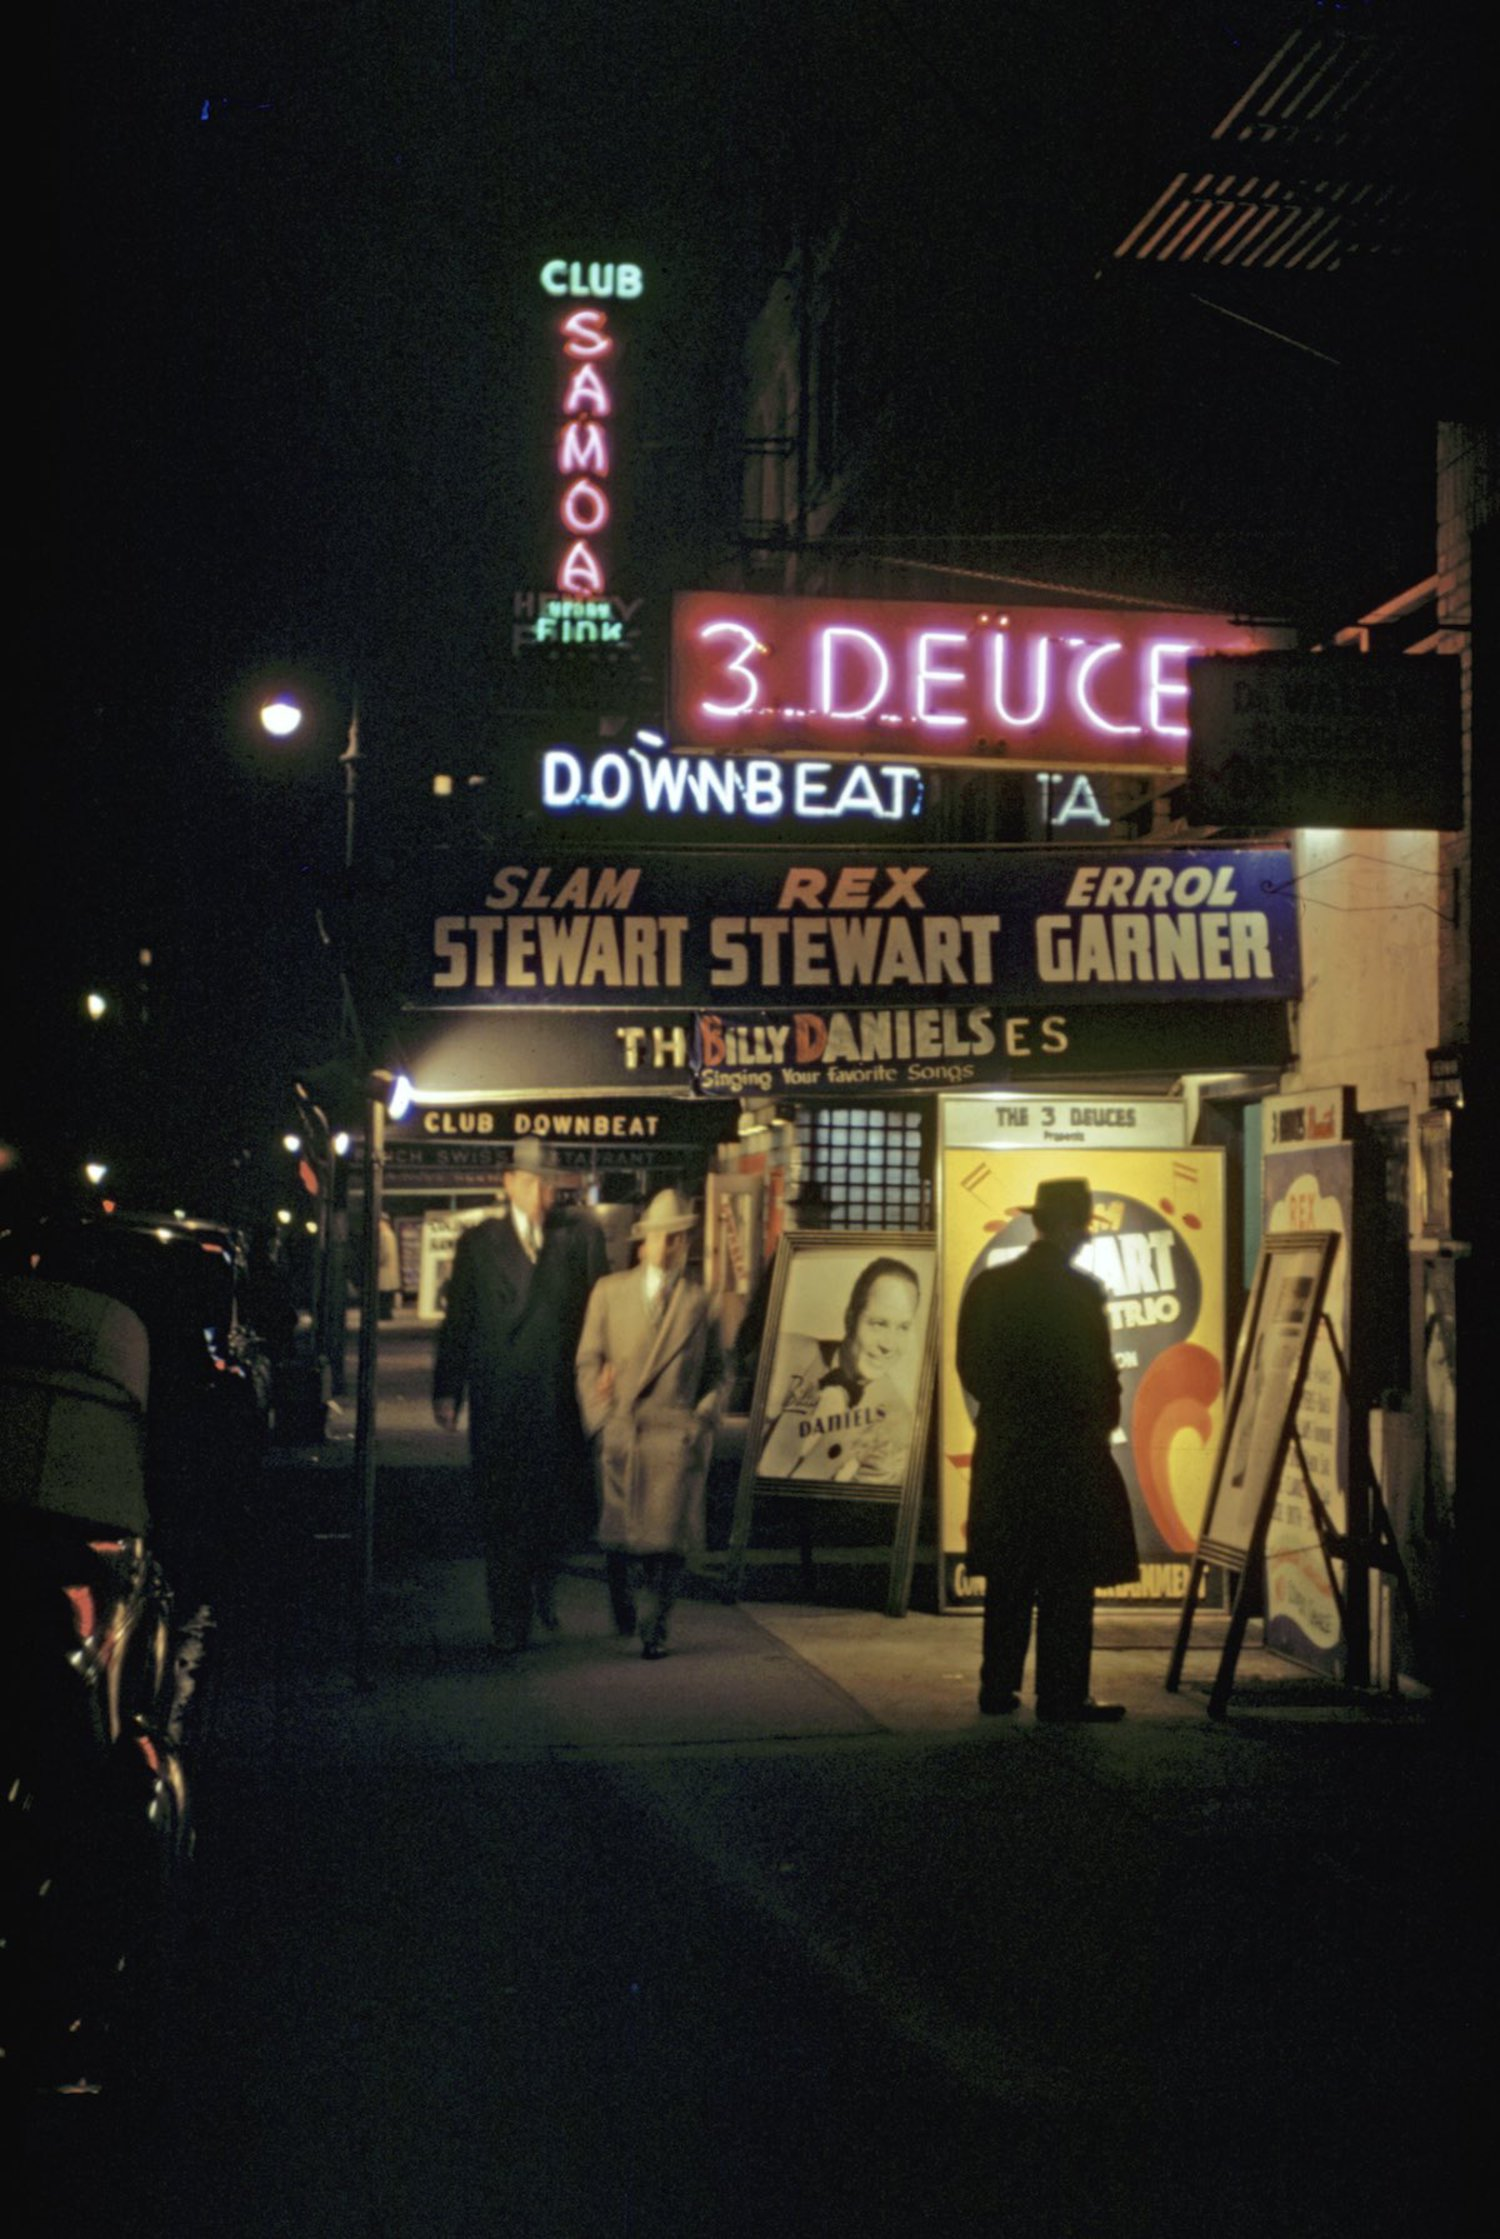 1946 Tourists wander past Club Samoa, Club Downbeat and 3 Deuce in Times Square.